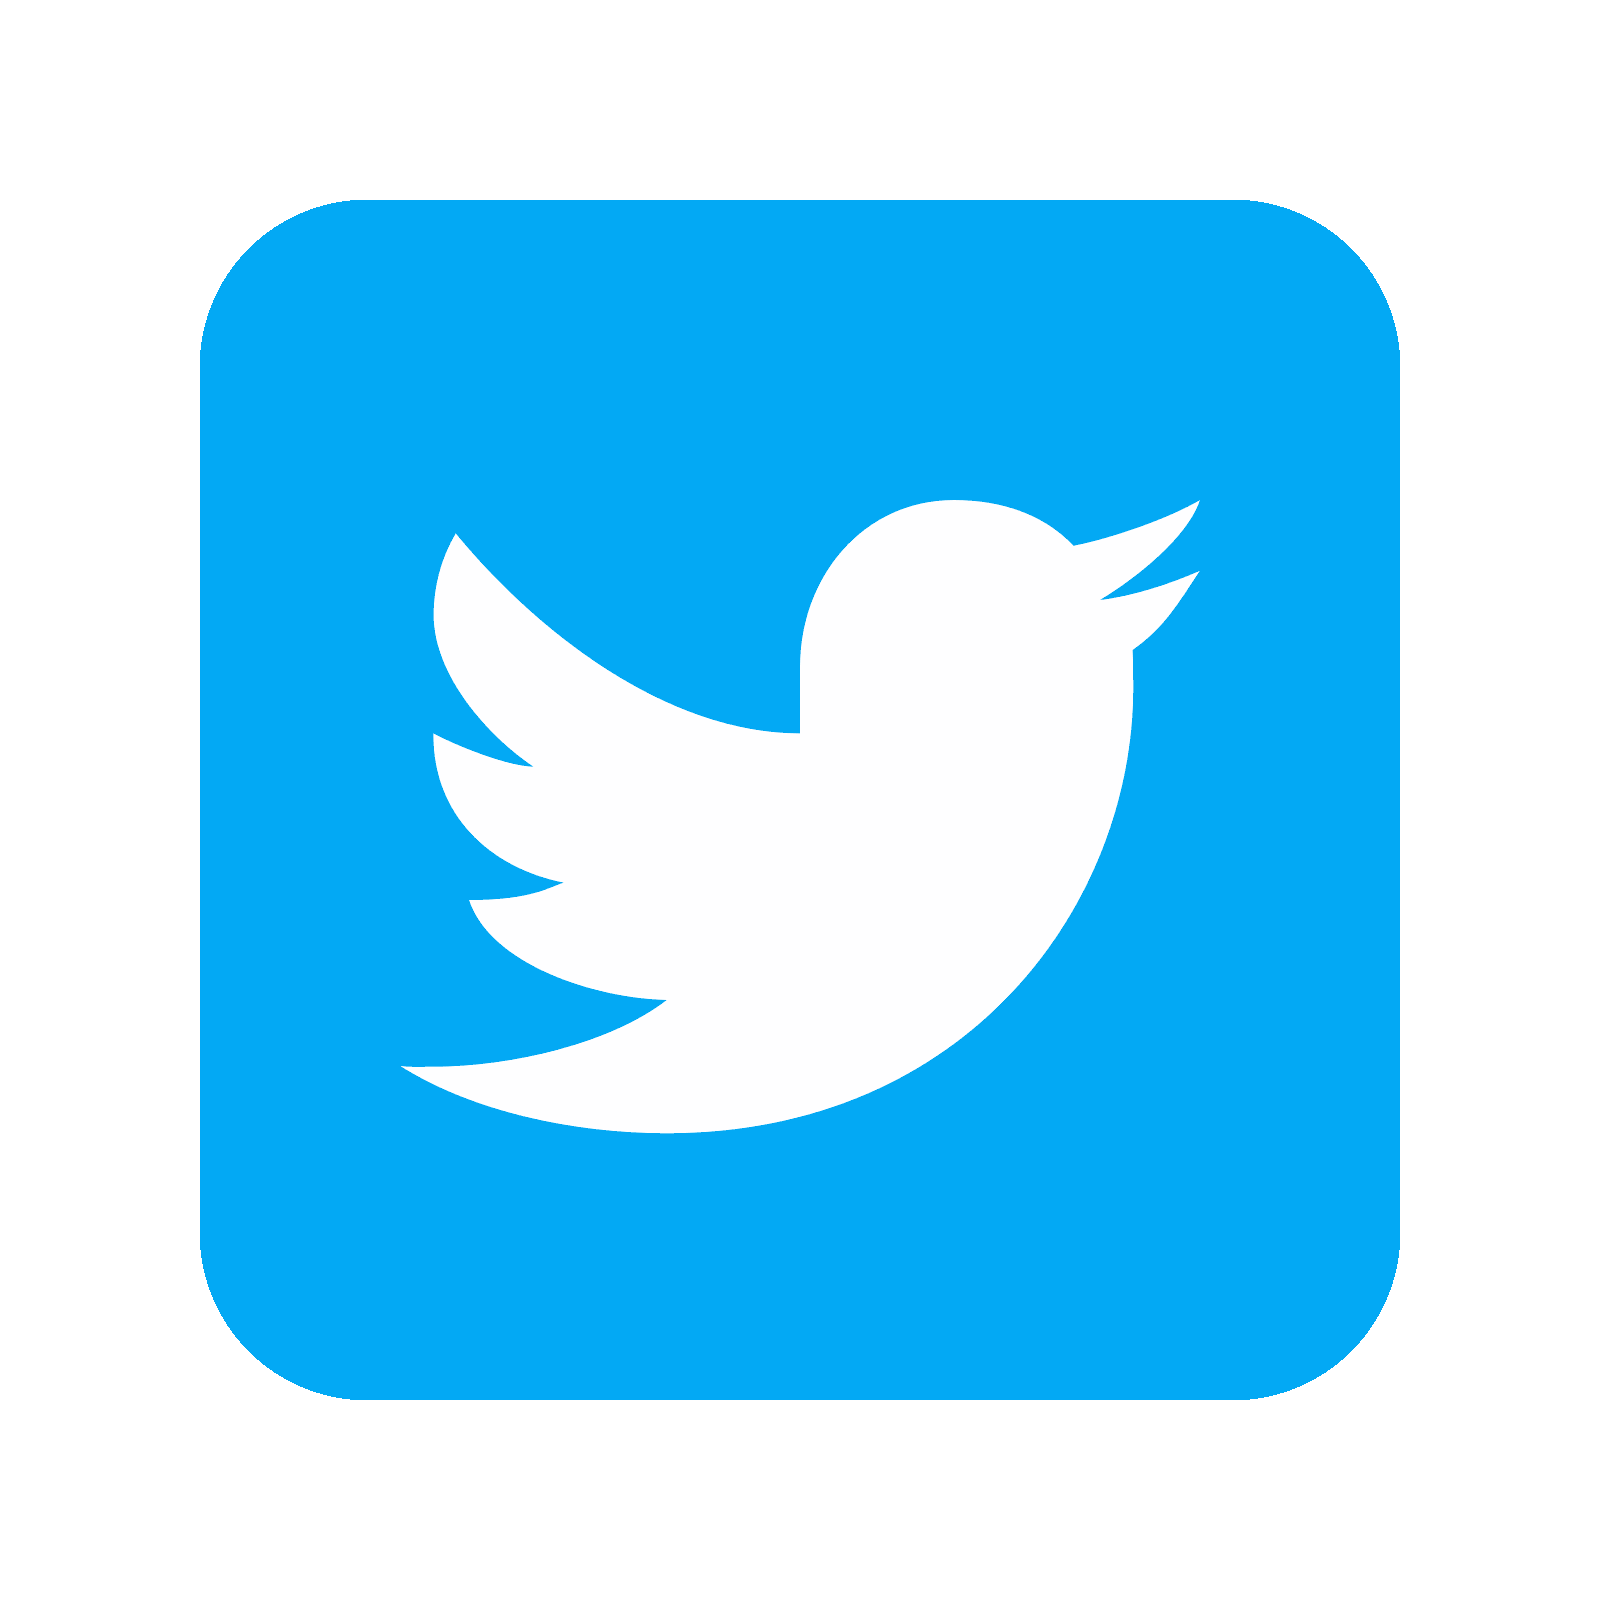 Facebook and twitter icons png. Retweet black logo icon